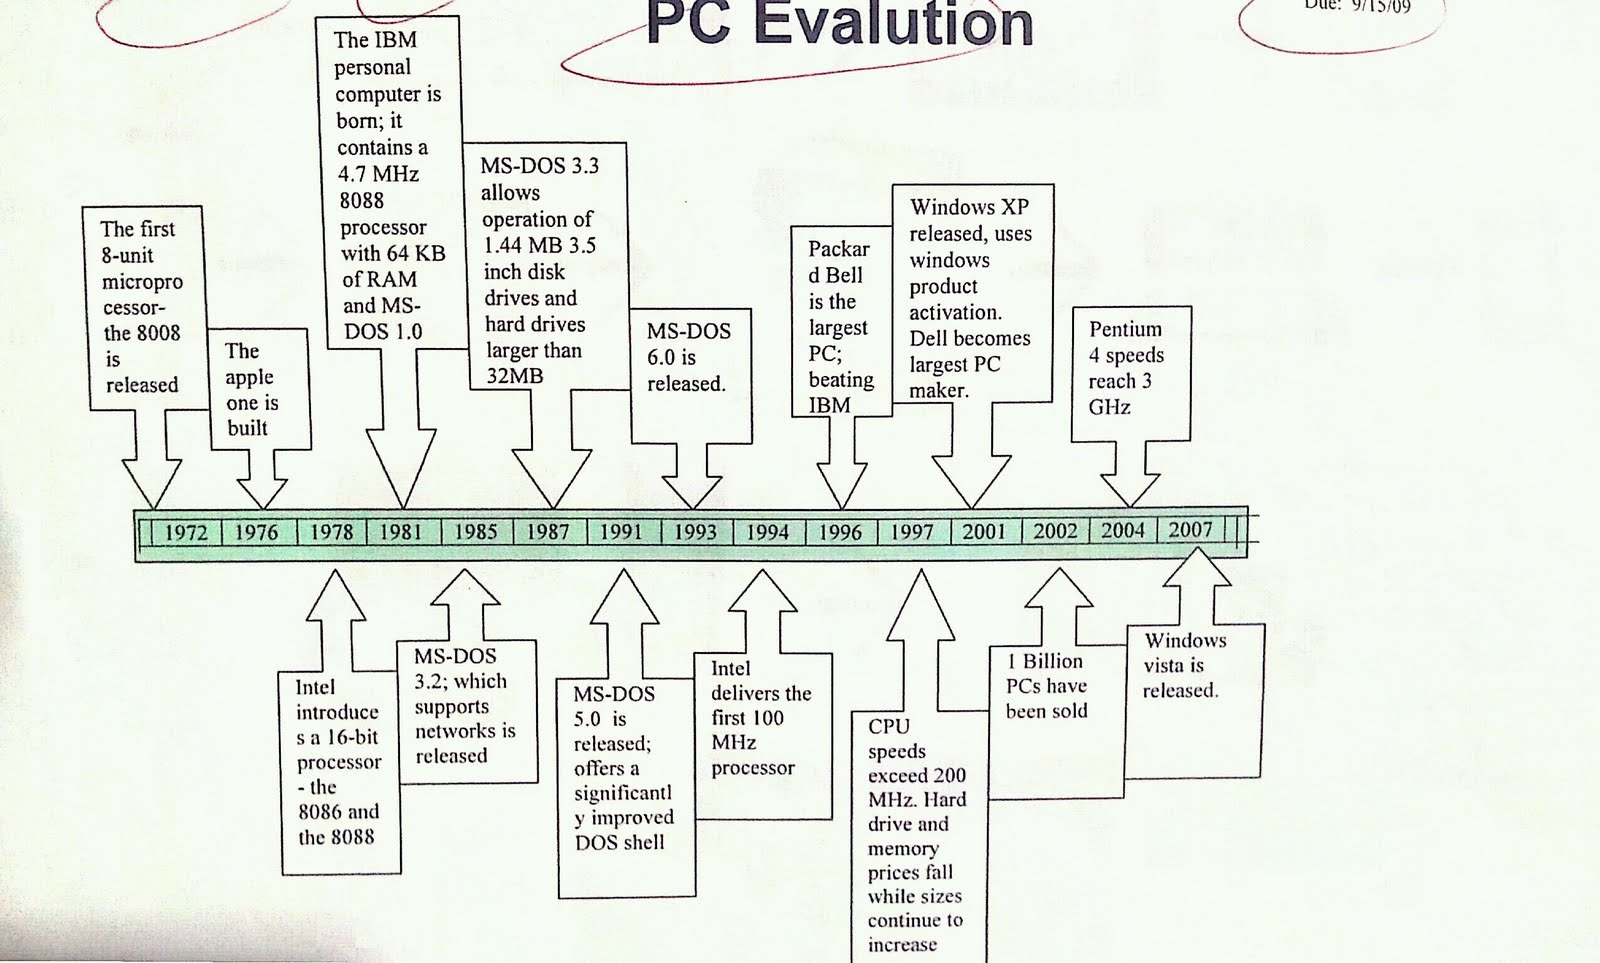 Timline of the Evolution of the Personal Computer (PC)